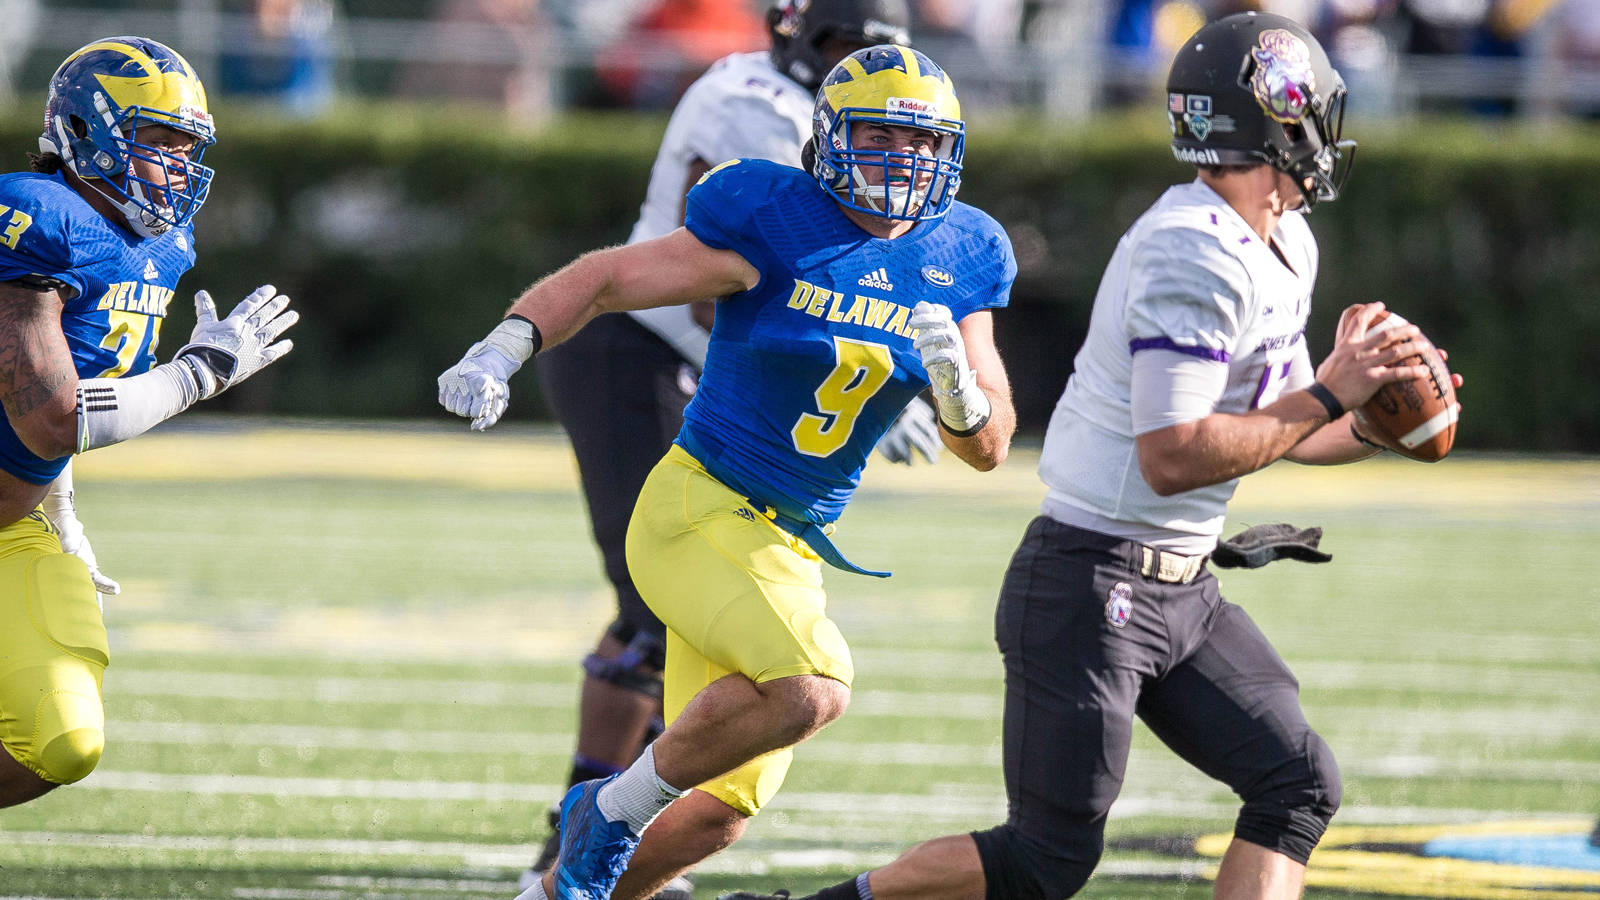 Another season, another strong Blue Hens defense